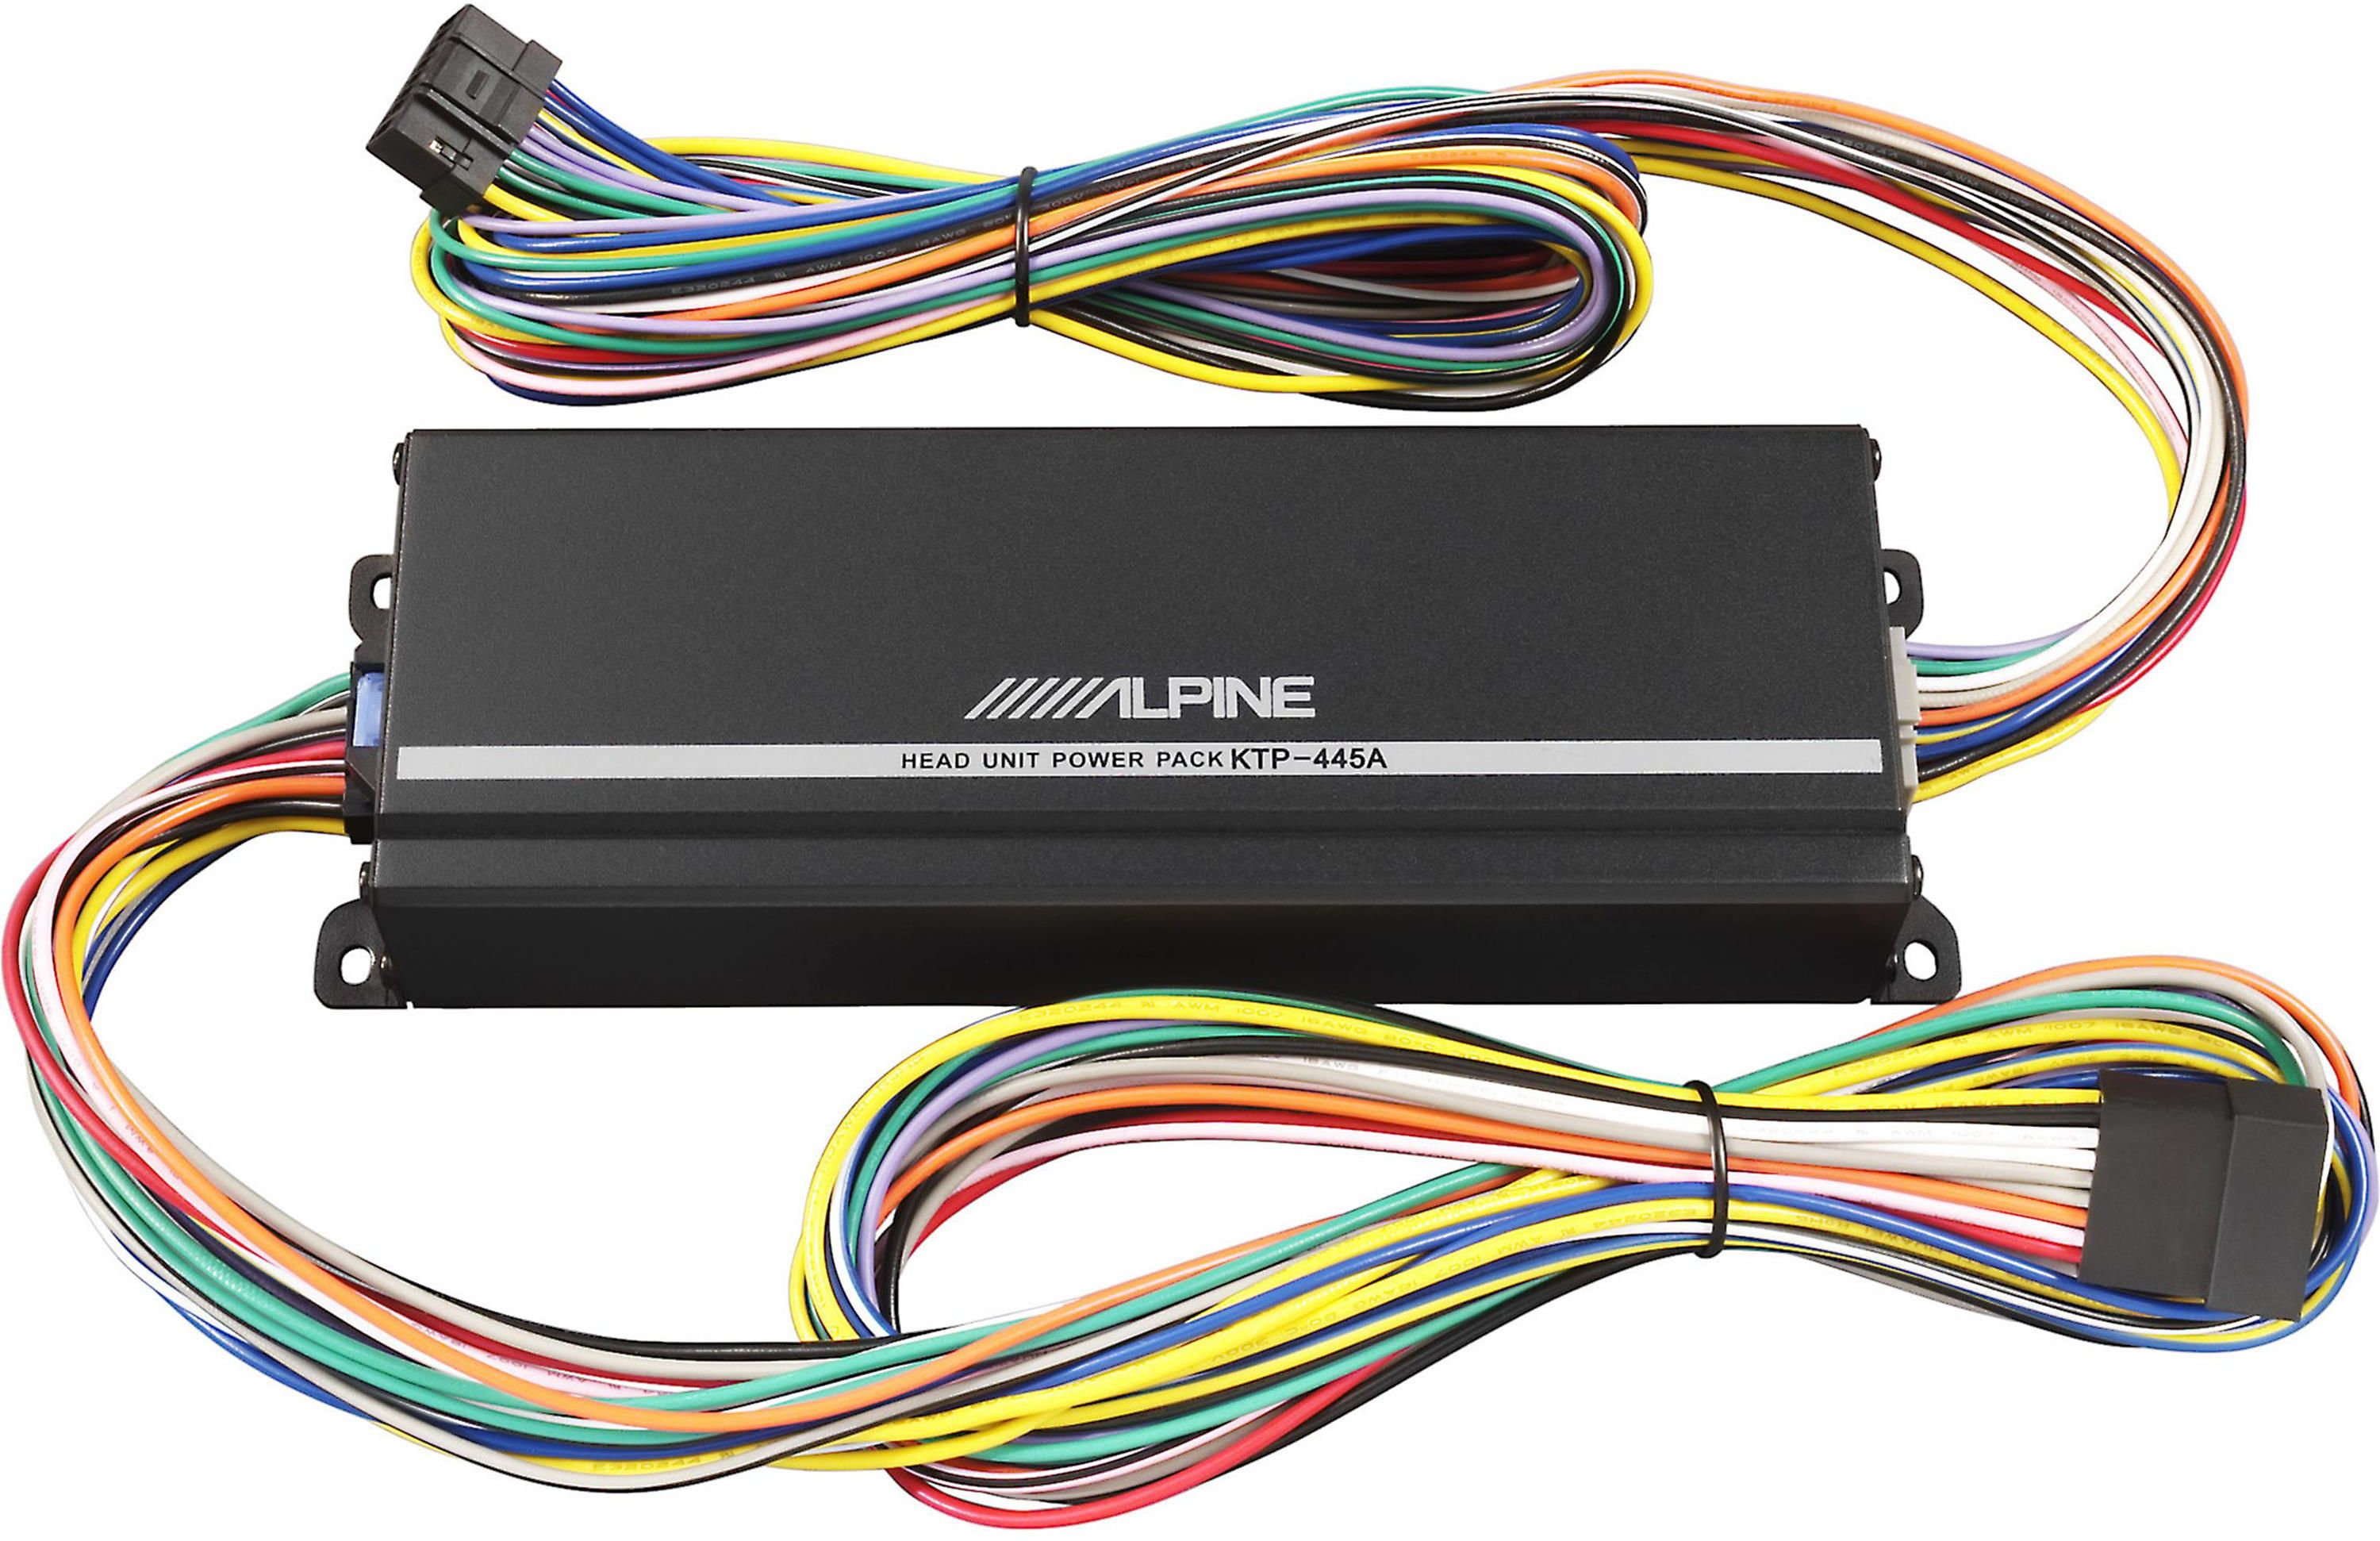 Alpine Power Pack Wiring Electrical Diagram Ktp 445u Amplifier 445a Rh Goodvibesav Com Head Unit